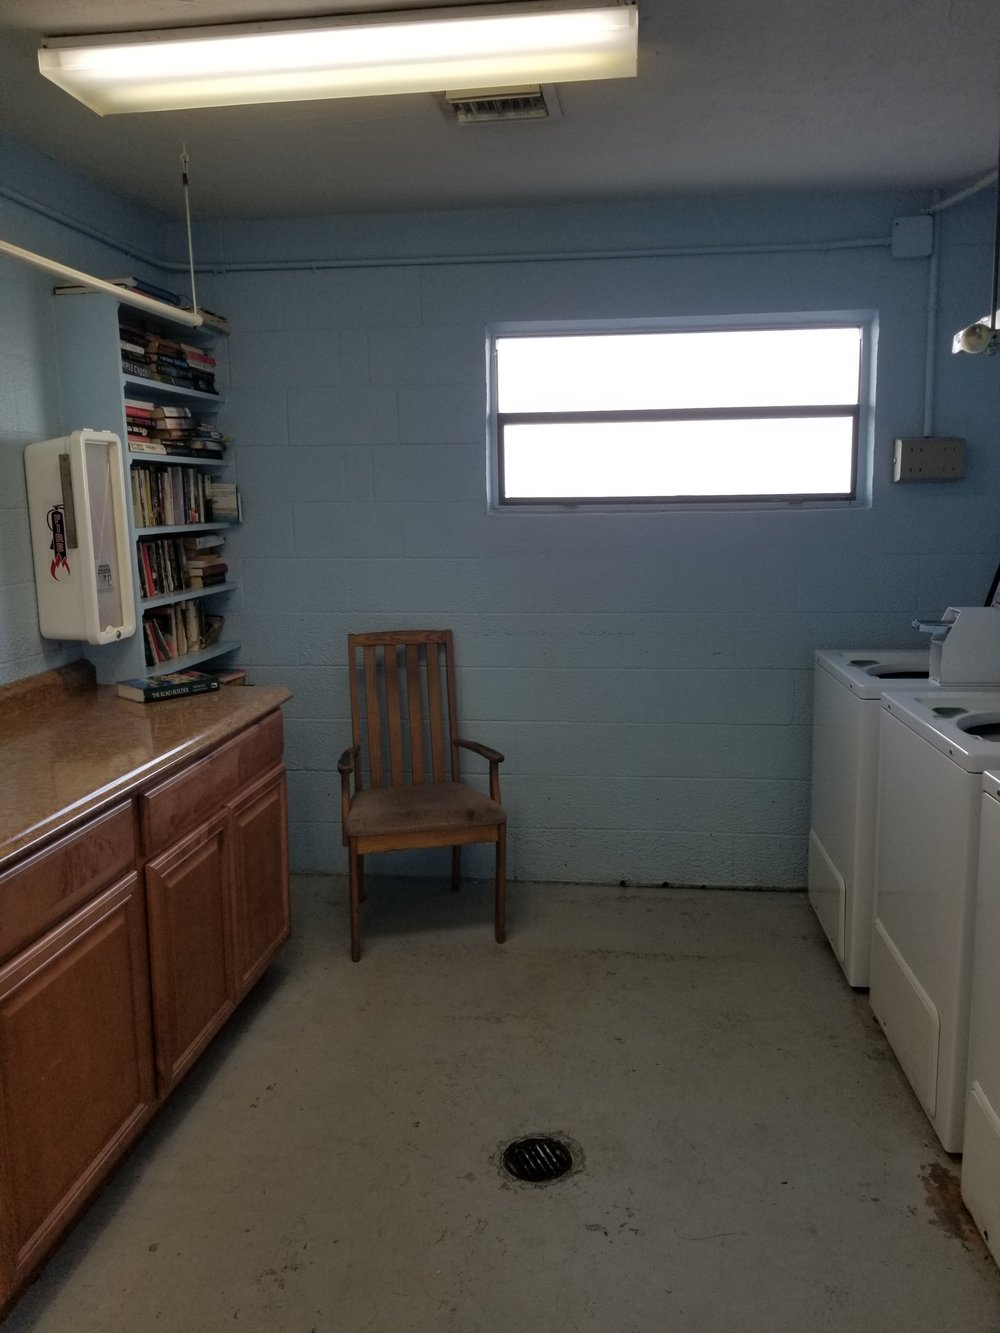 The laundry room. It doesn't look like much, but the chair is pretty comfy and the book swap is a good one!